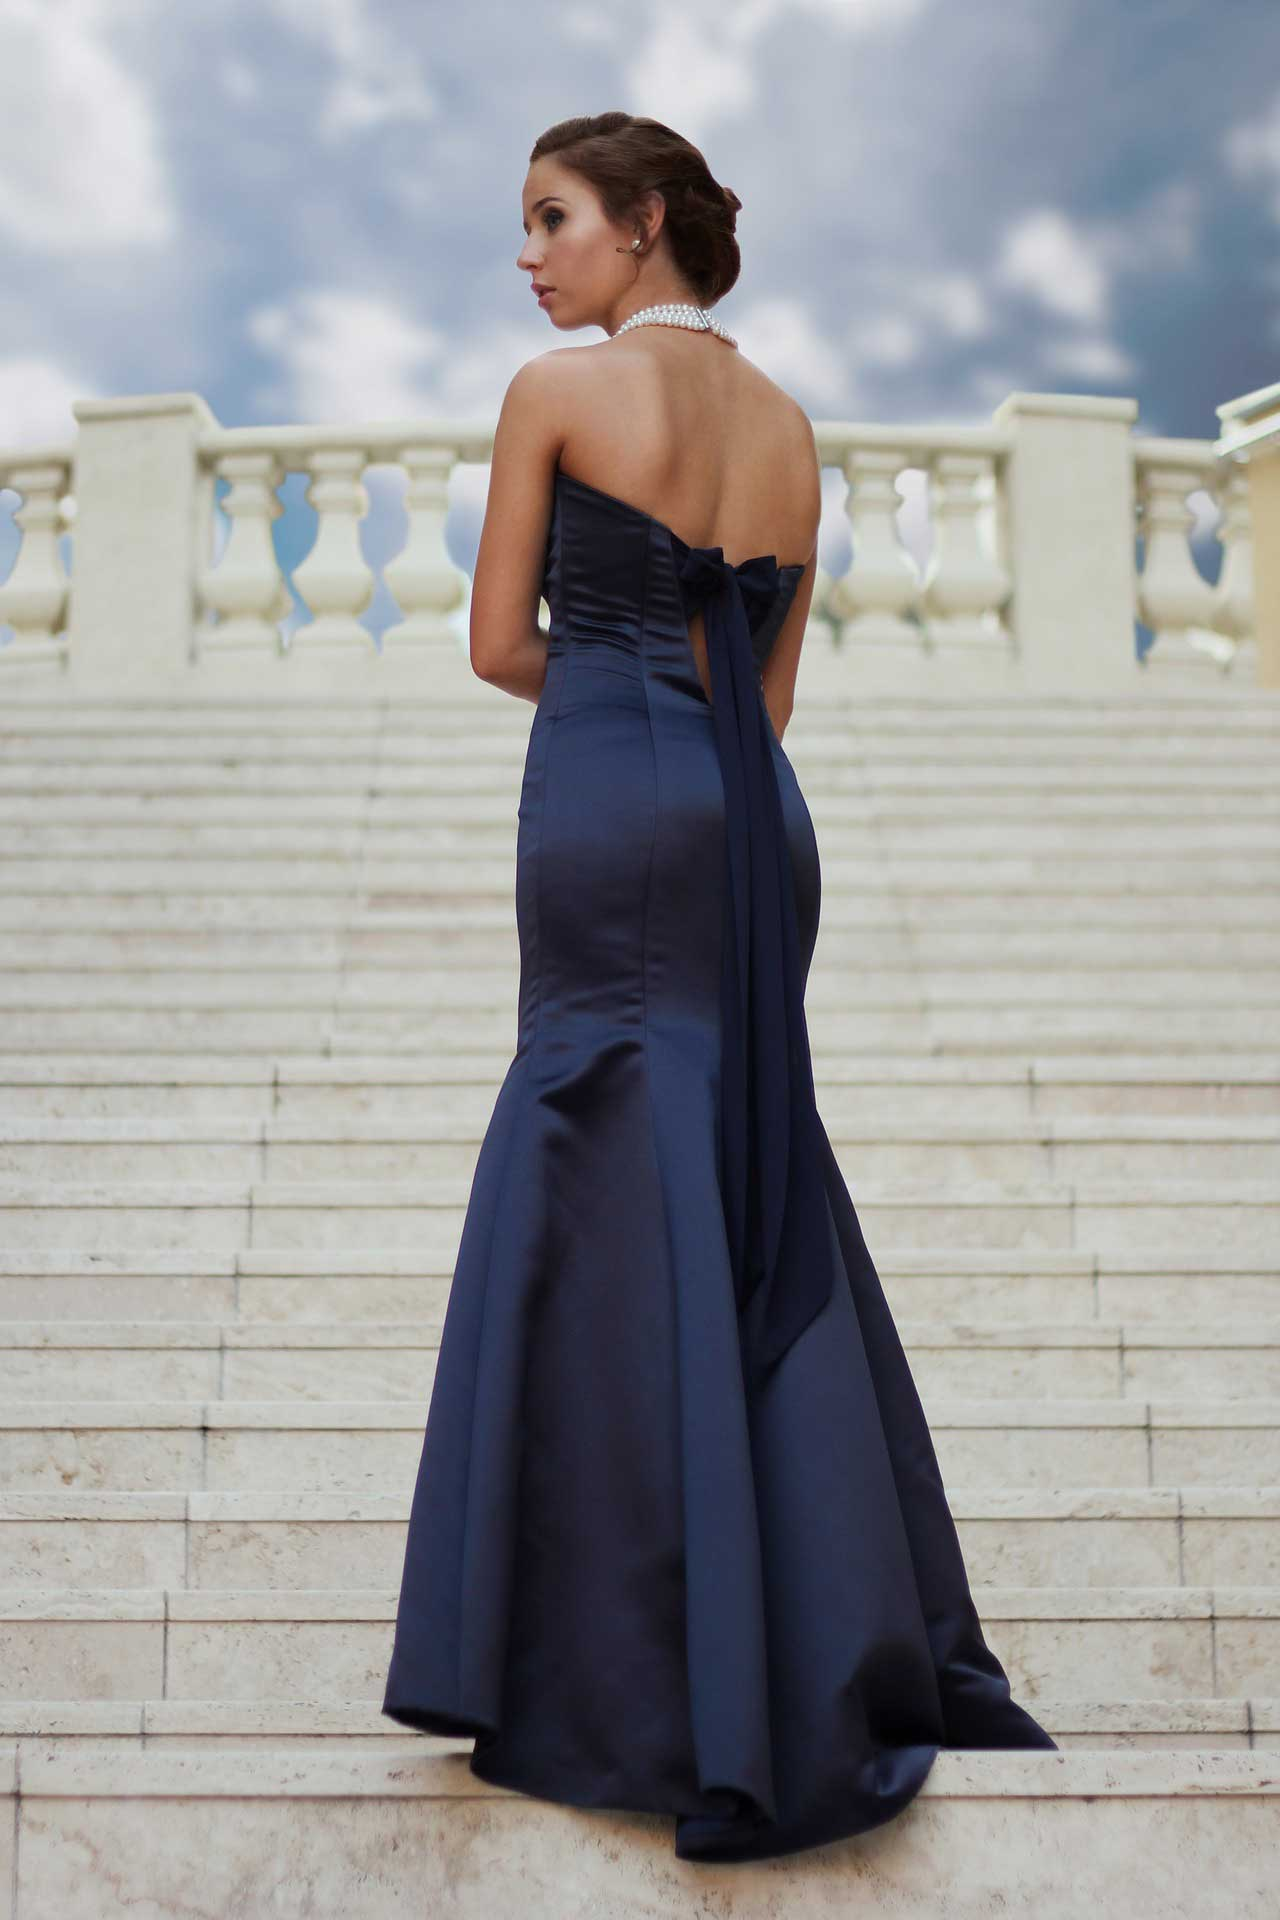 Where We Find Amazing Military Ball Dresses Online | Spousehood